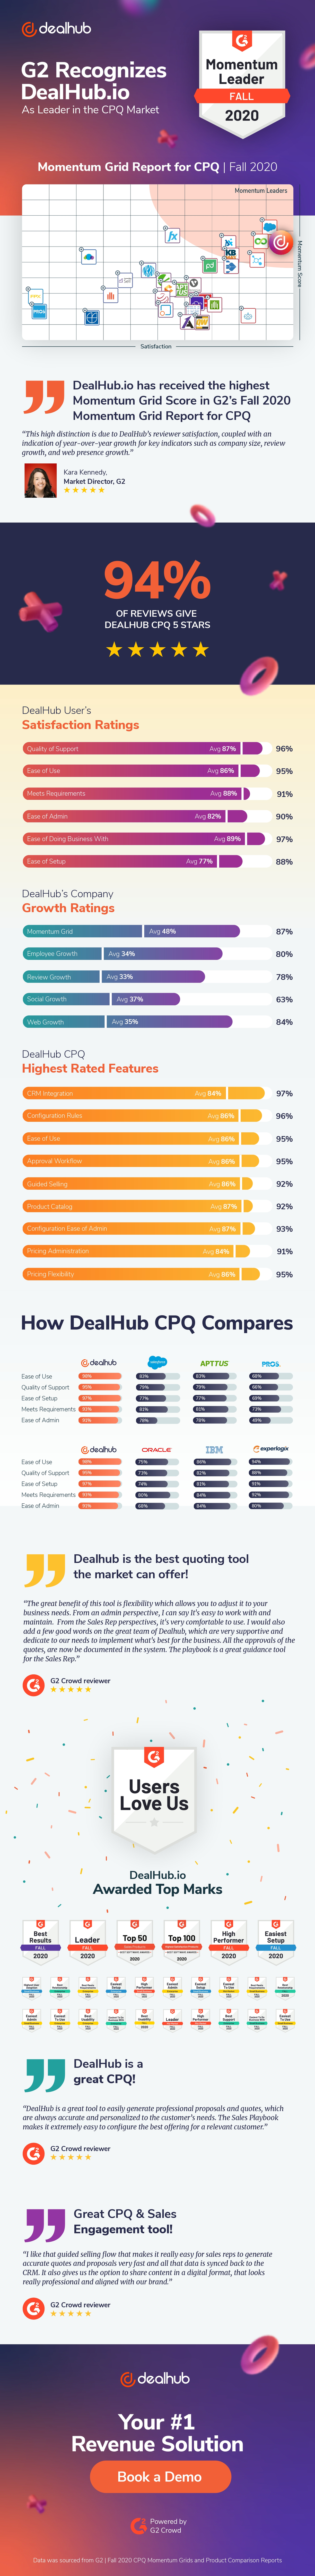 DLH_G2_Infographic_V1.5_page-0001